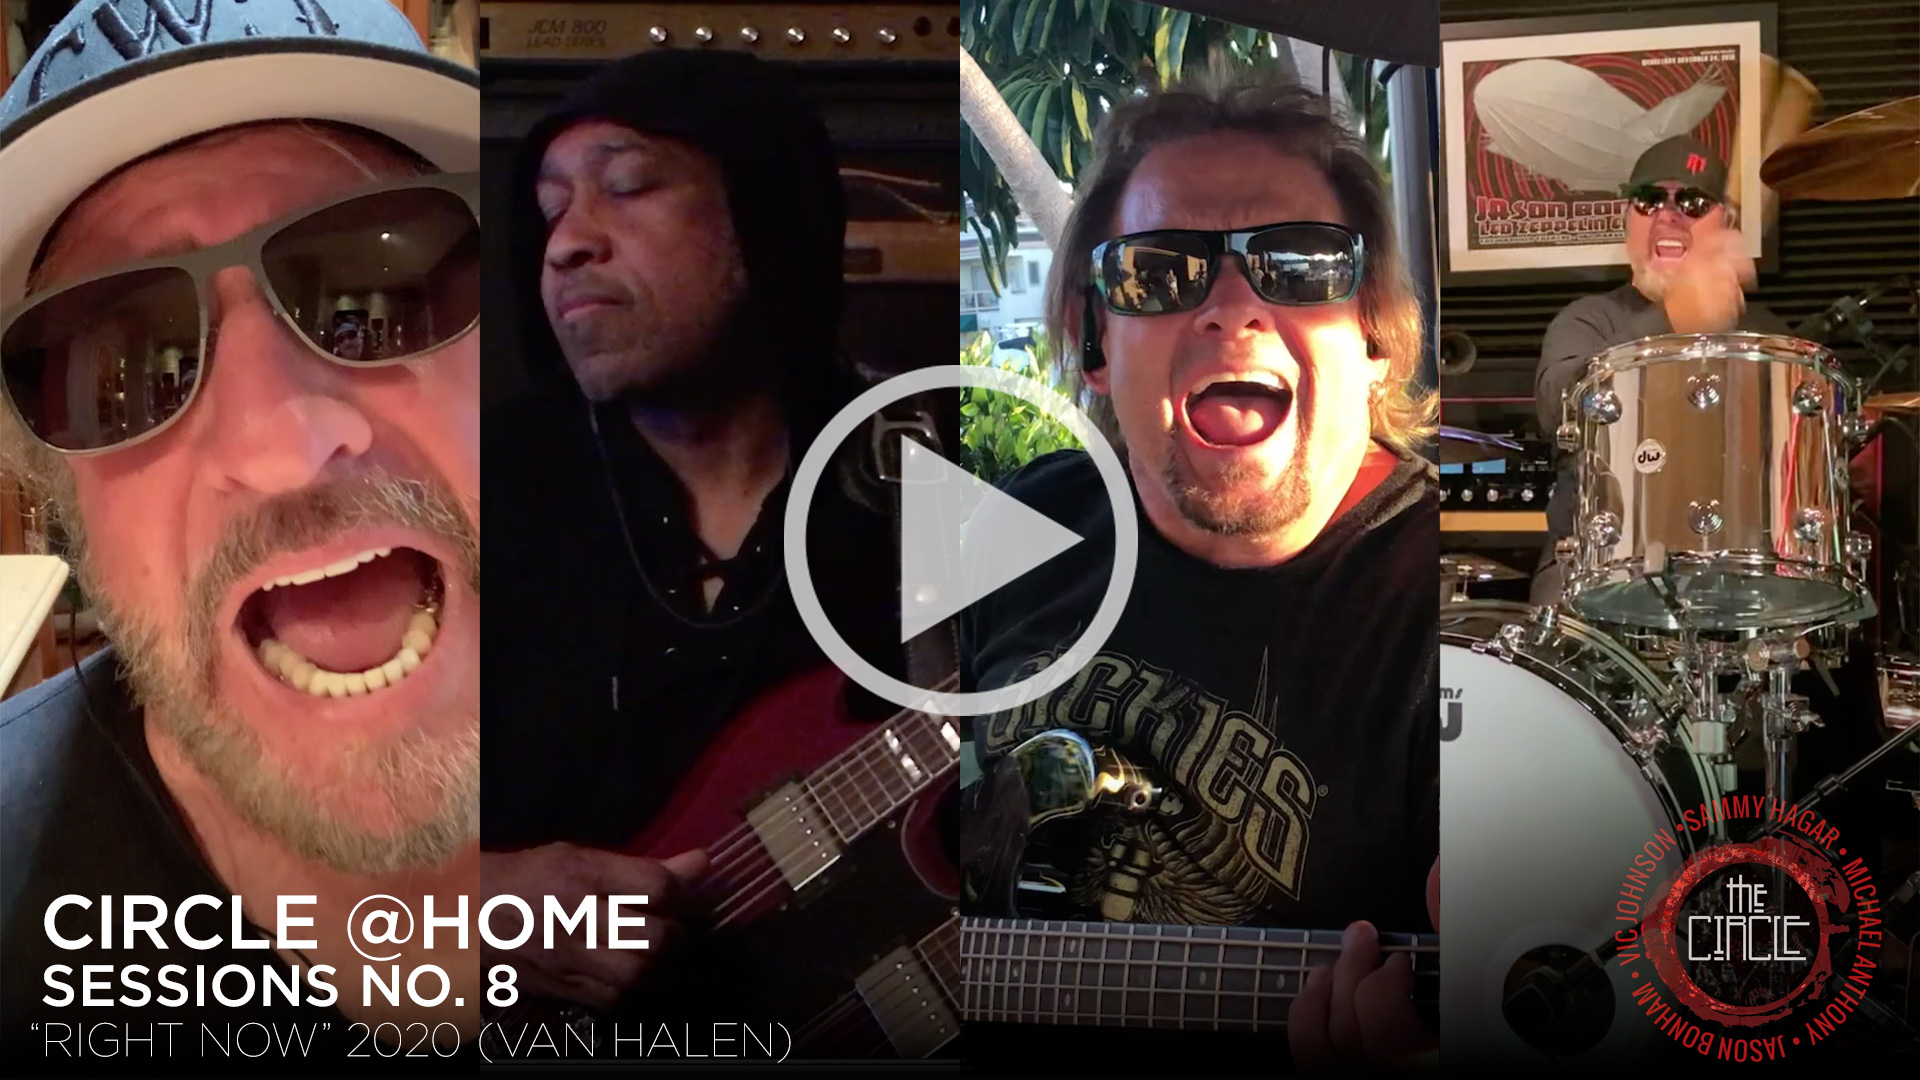 The Circle at Home Sessions No. 8 - Right Now